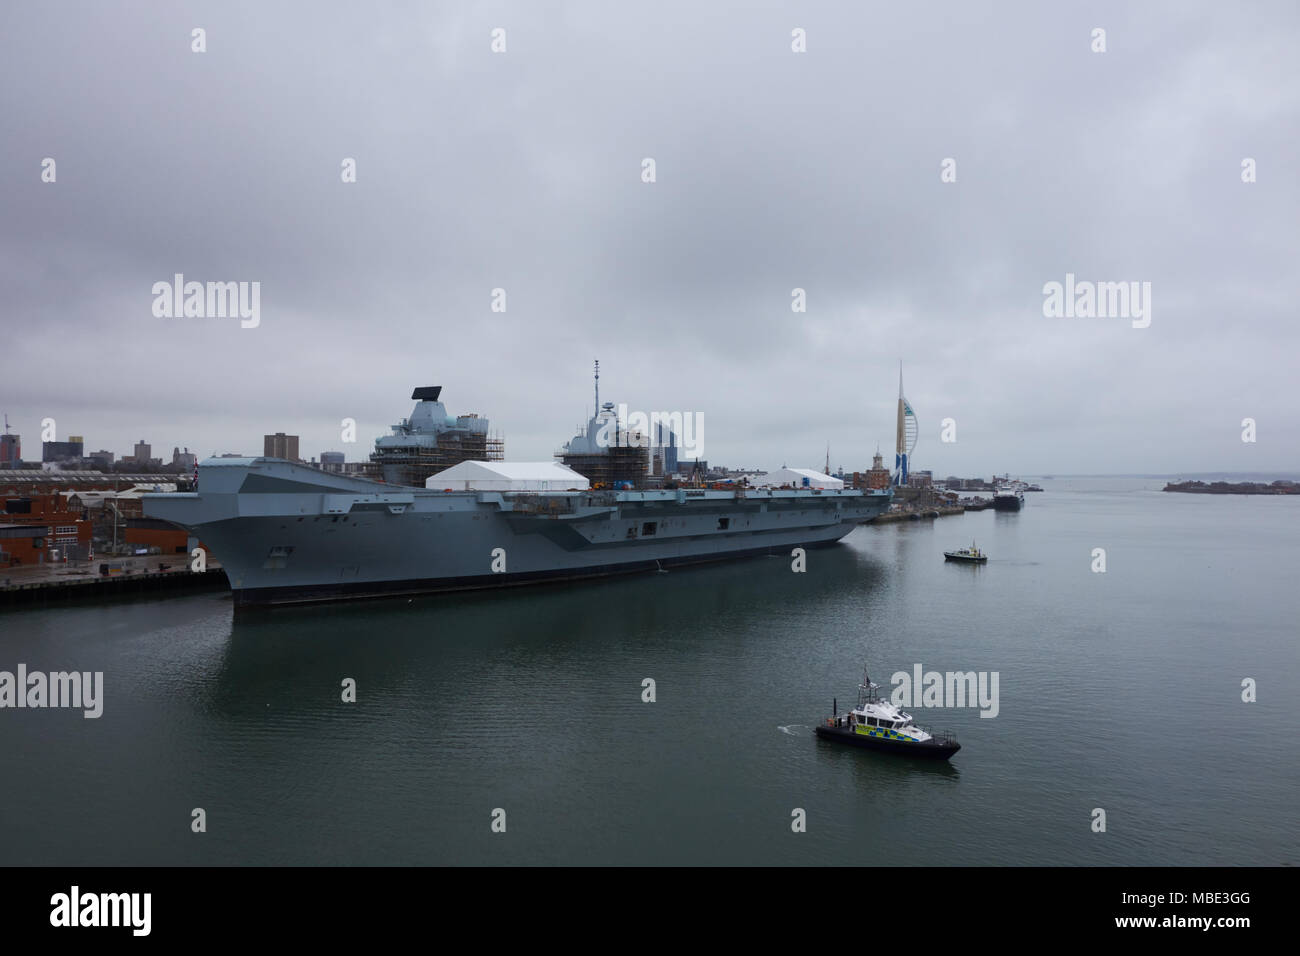 Port view of Royal Navy HMS Queen Elizabeth under maintenance, with police patrol boats on guard in Portsmouth, UK - Stock Image